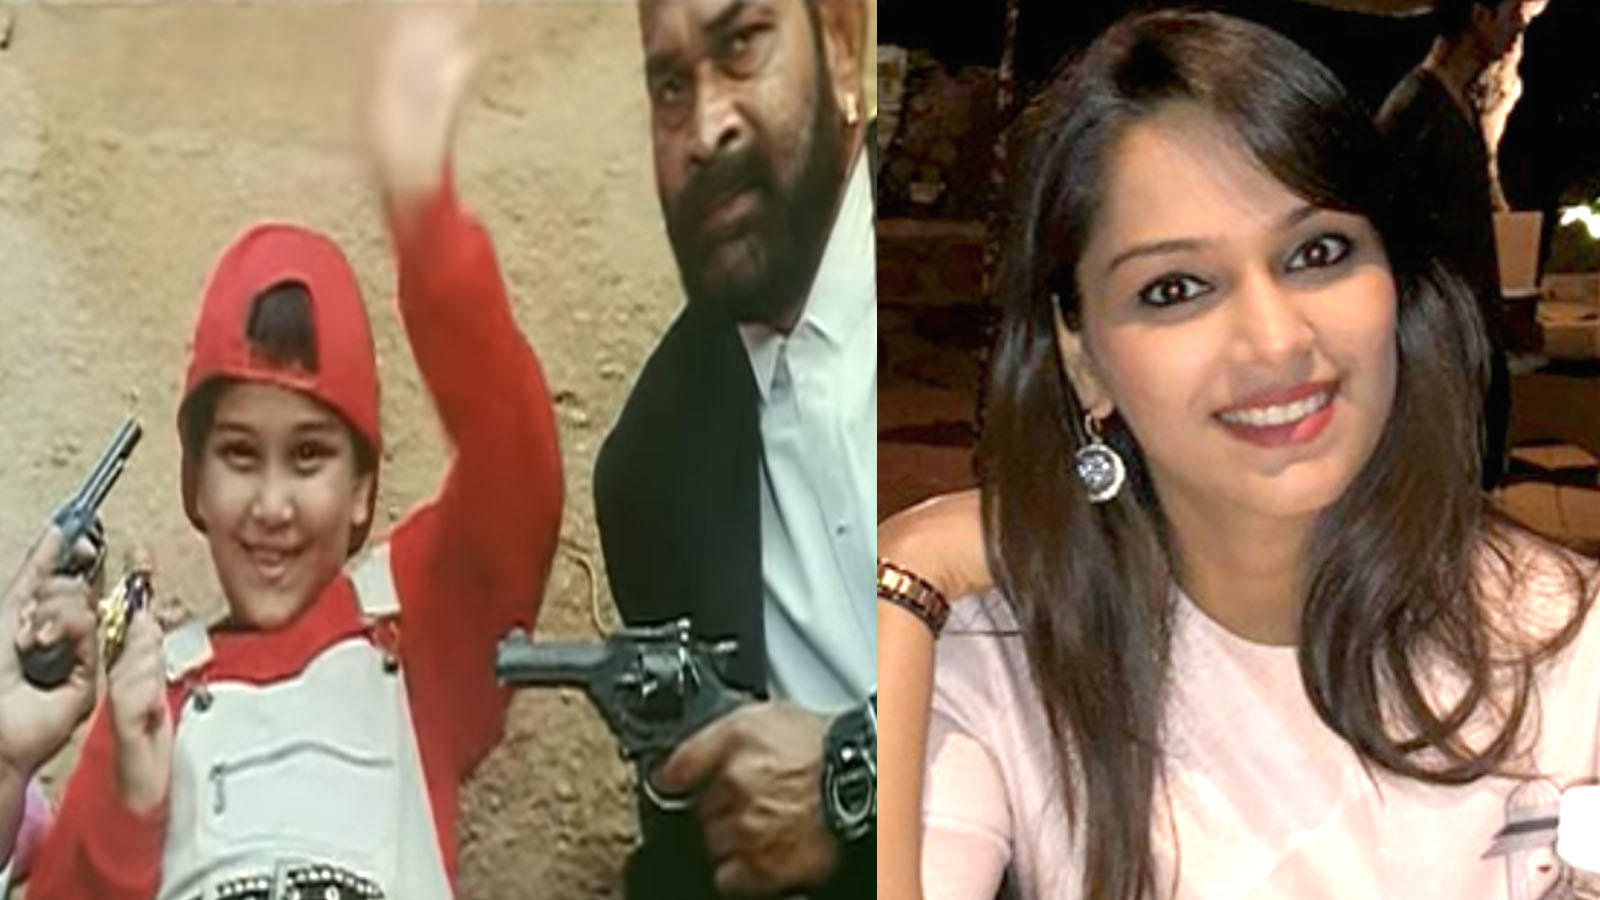 The child artist from 'Baadshah' is all grown up now, looks completely  transformed!